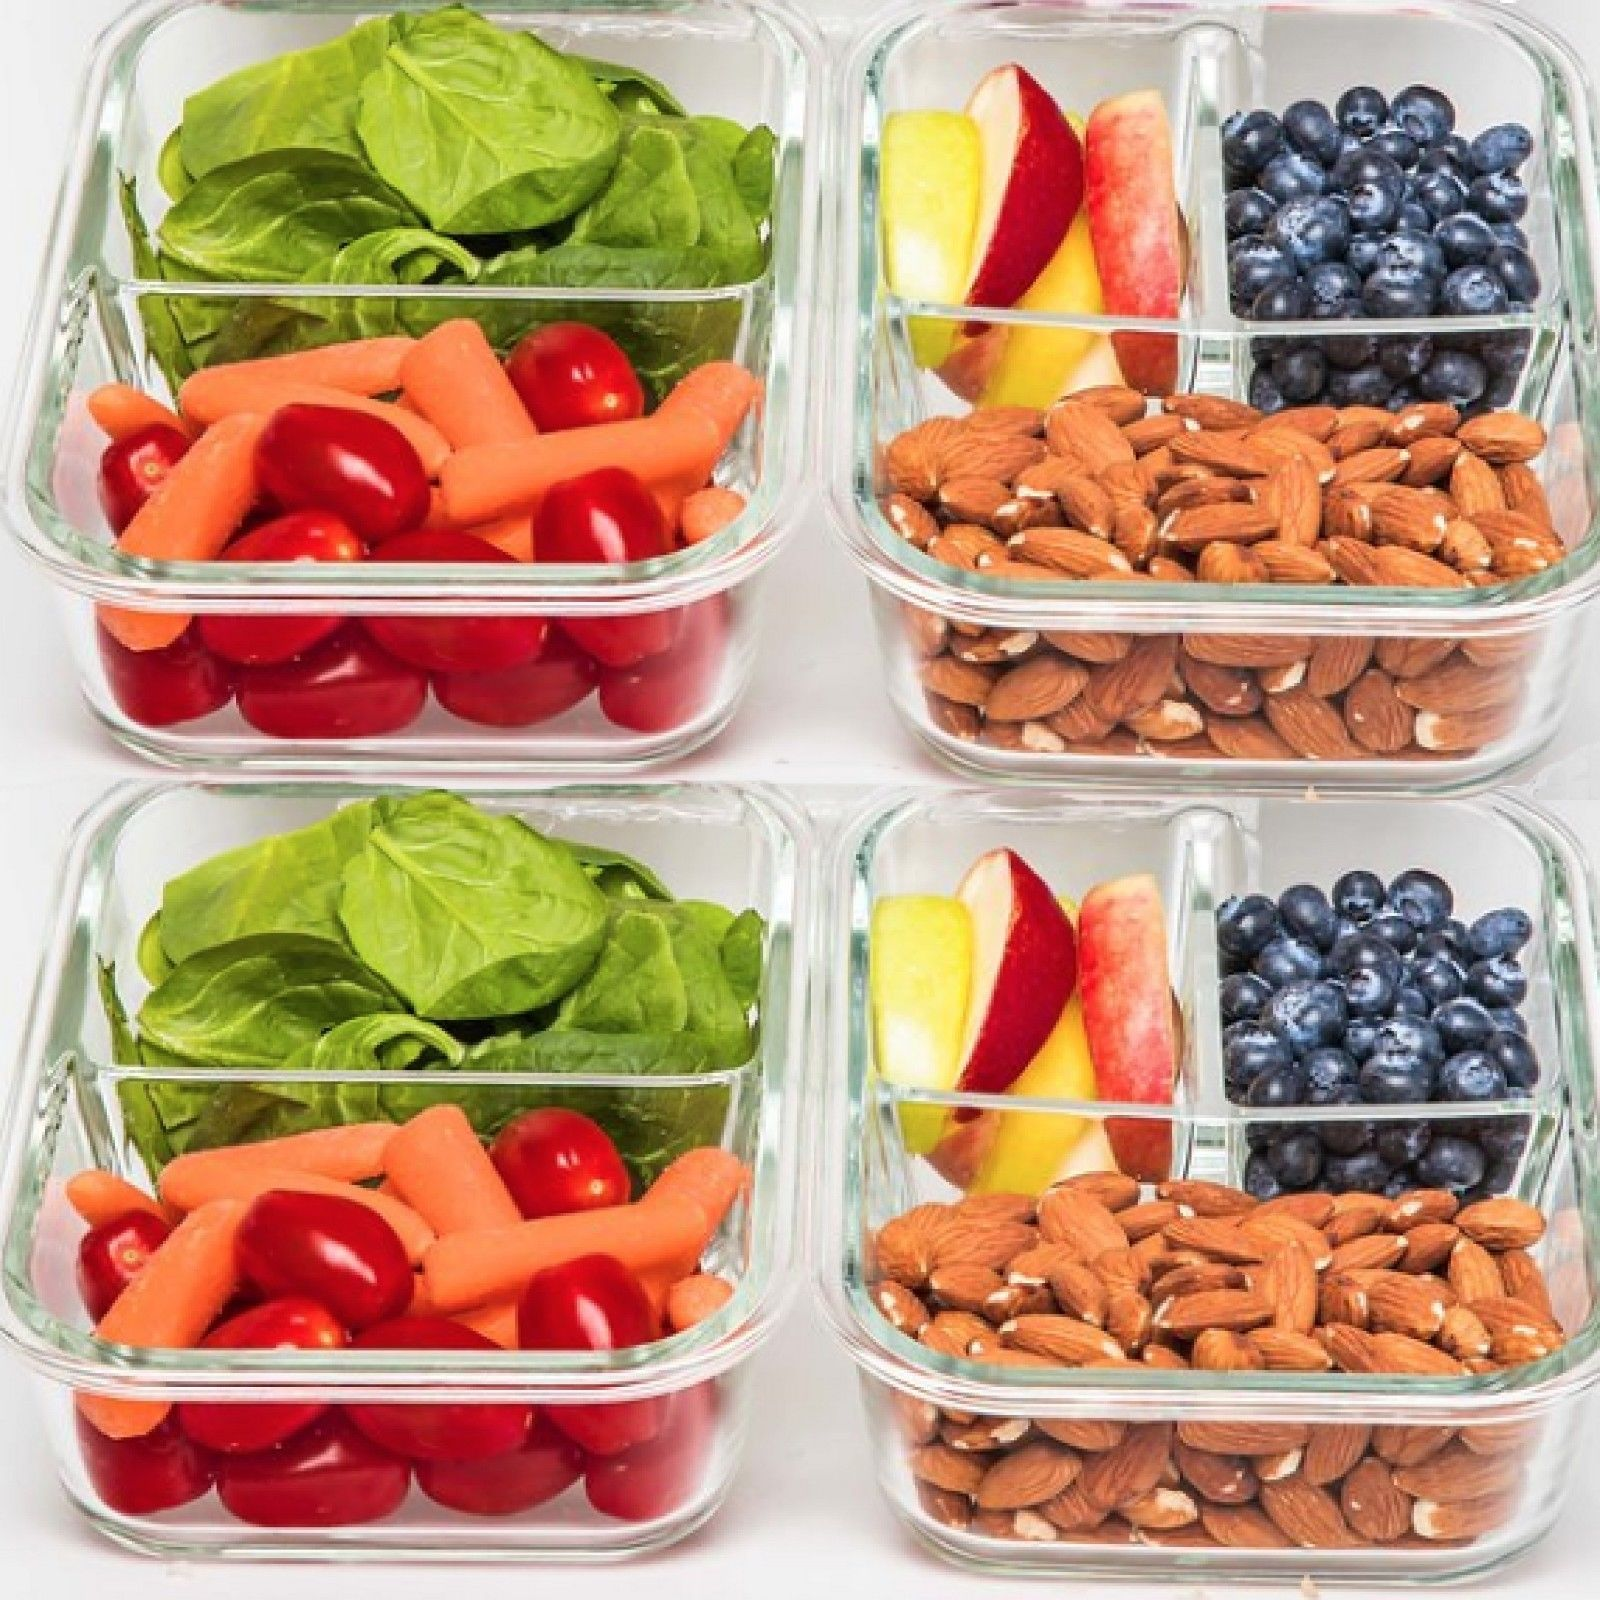 2 & 3 Compartment Glass Meal Prep Food Storage Containers - 4 Pack 1